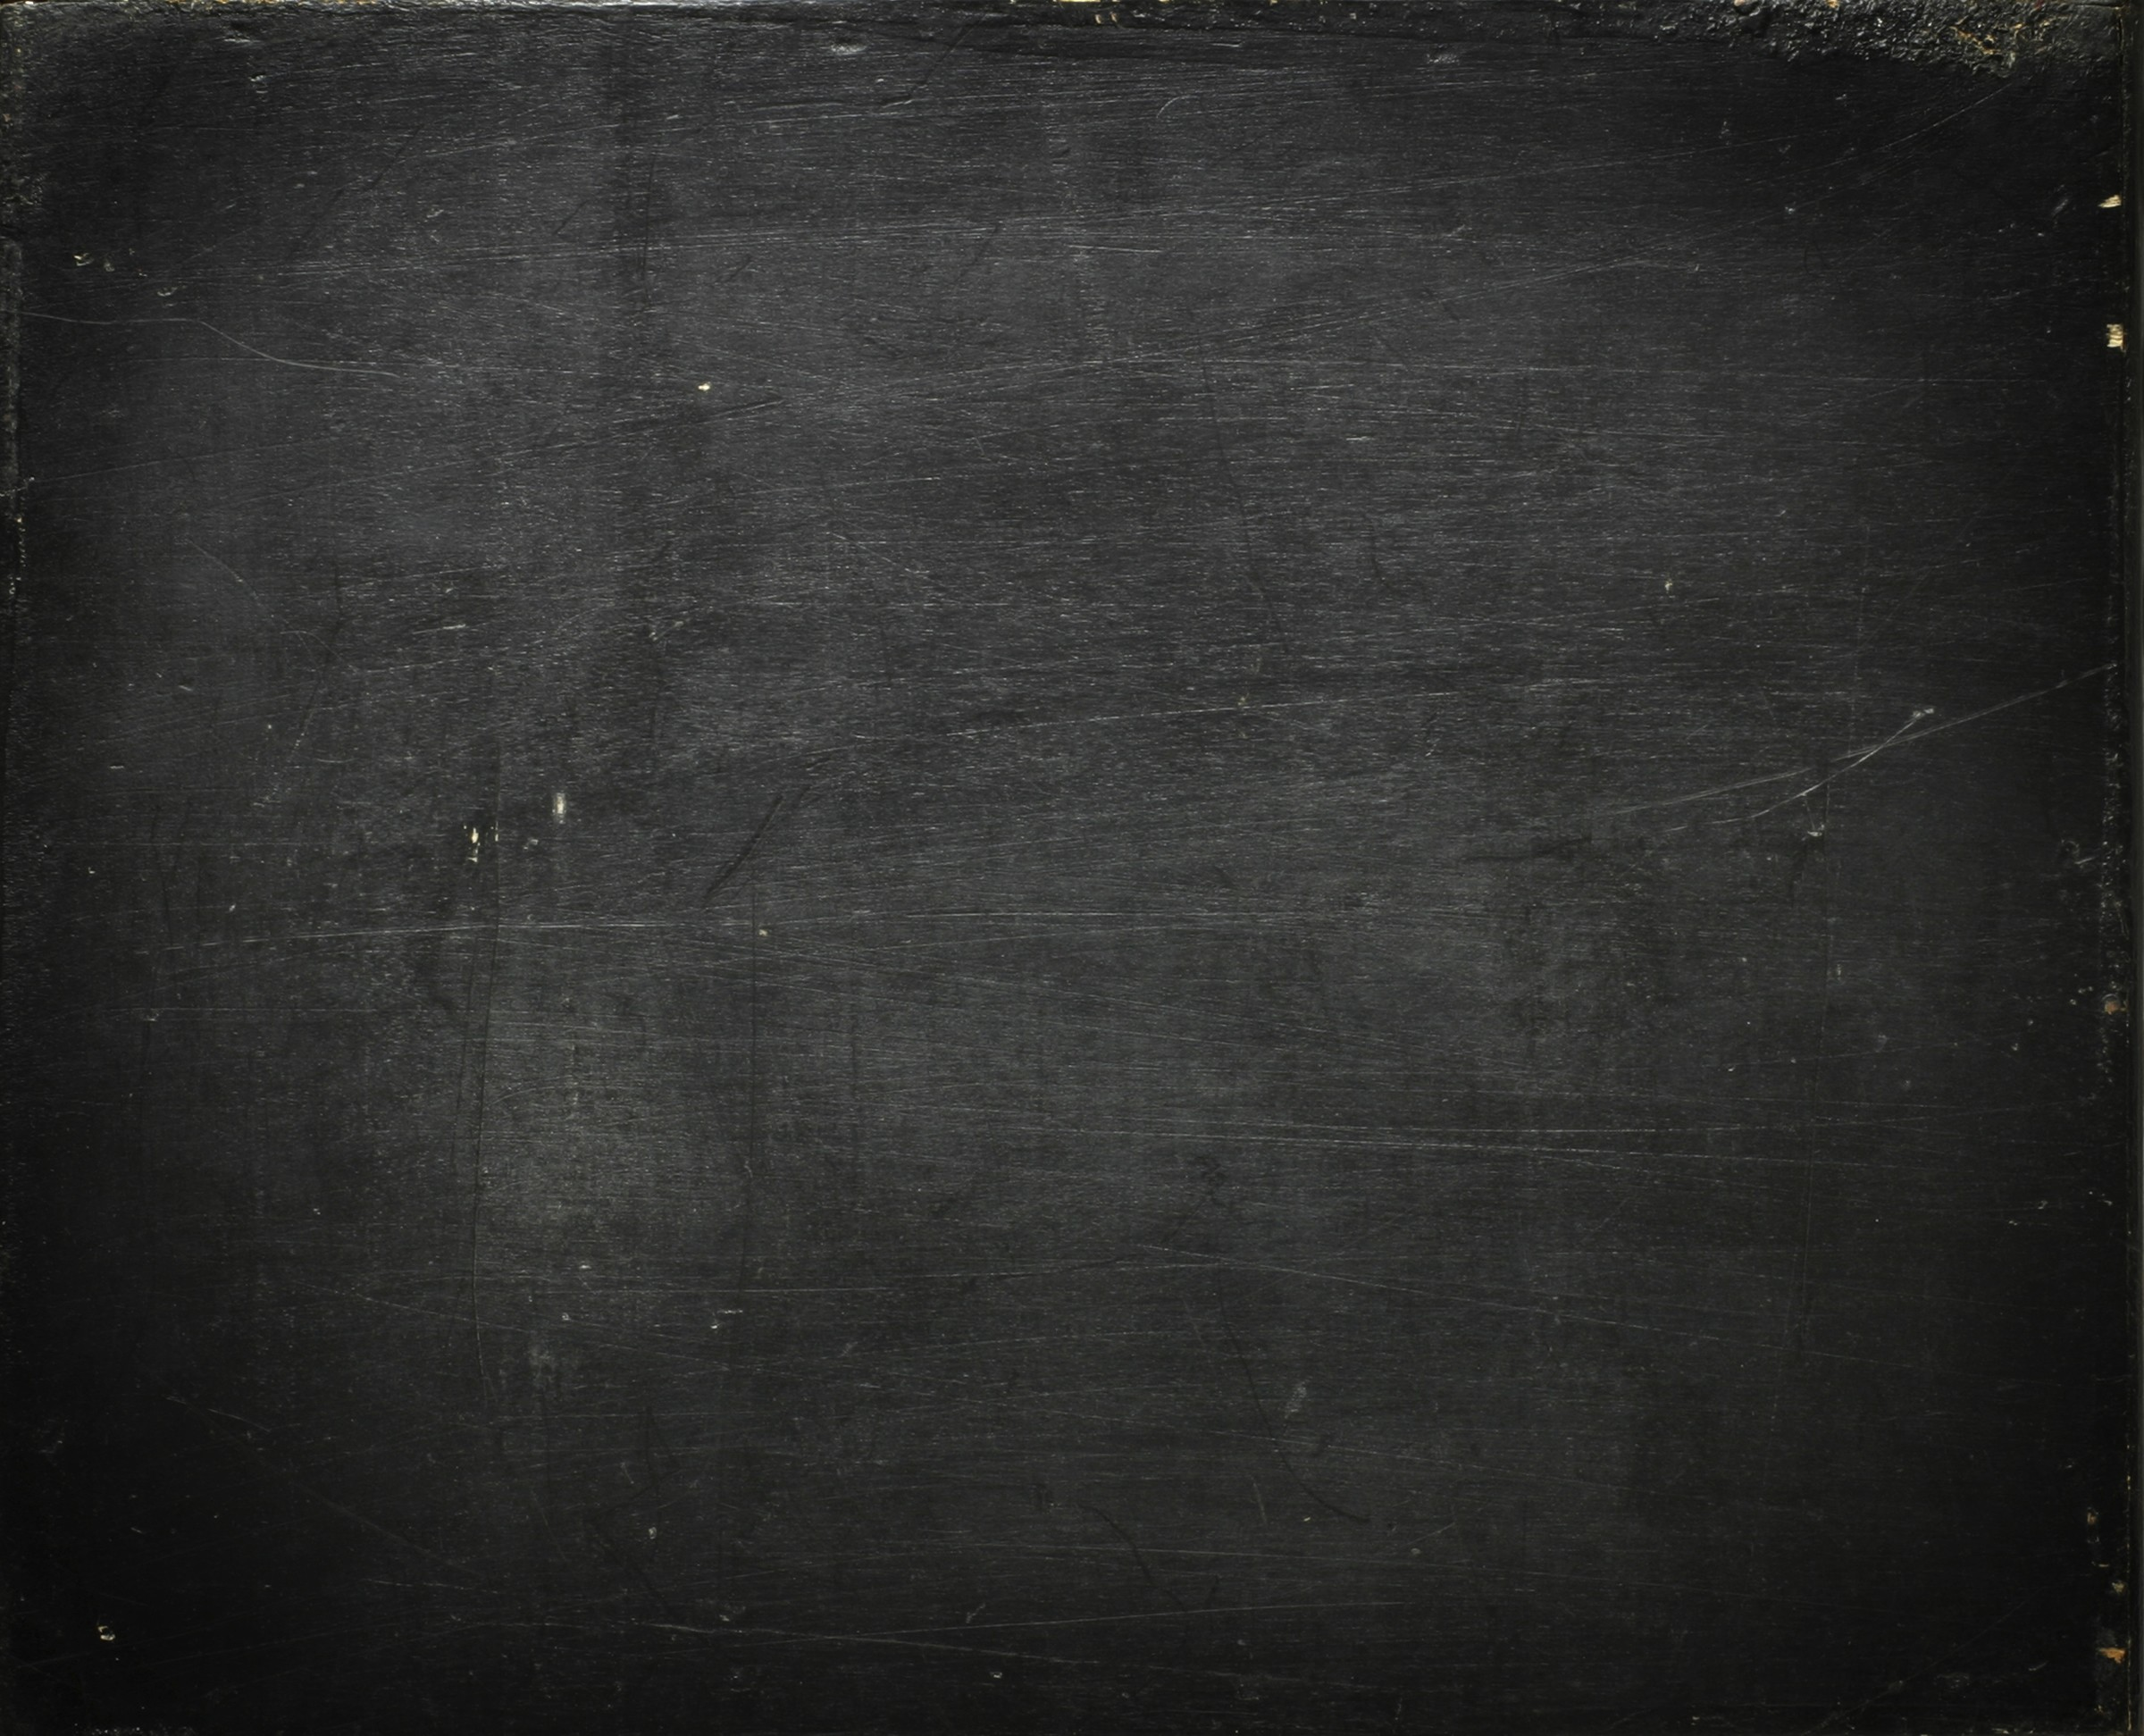 chalkboard background download free awesome hd. Black Bedroom Furniture Sets. Home Design Ideas